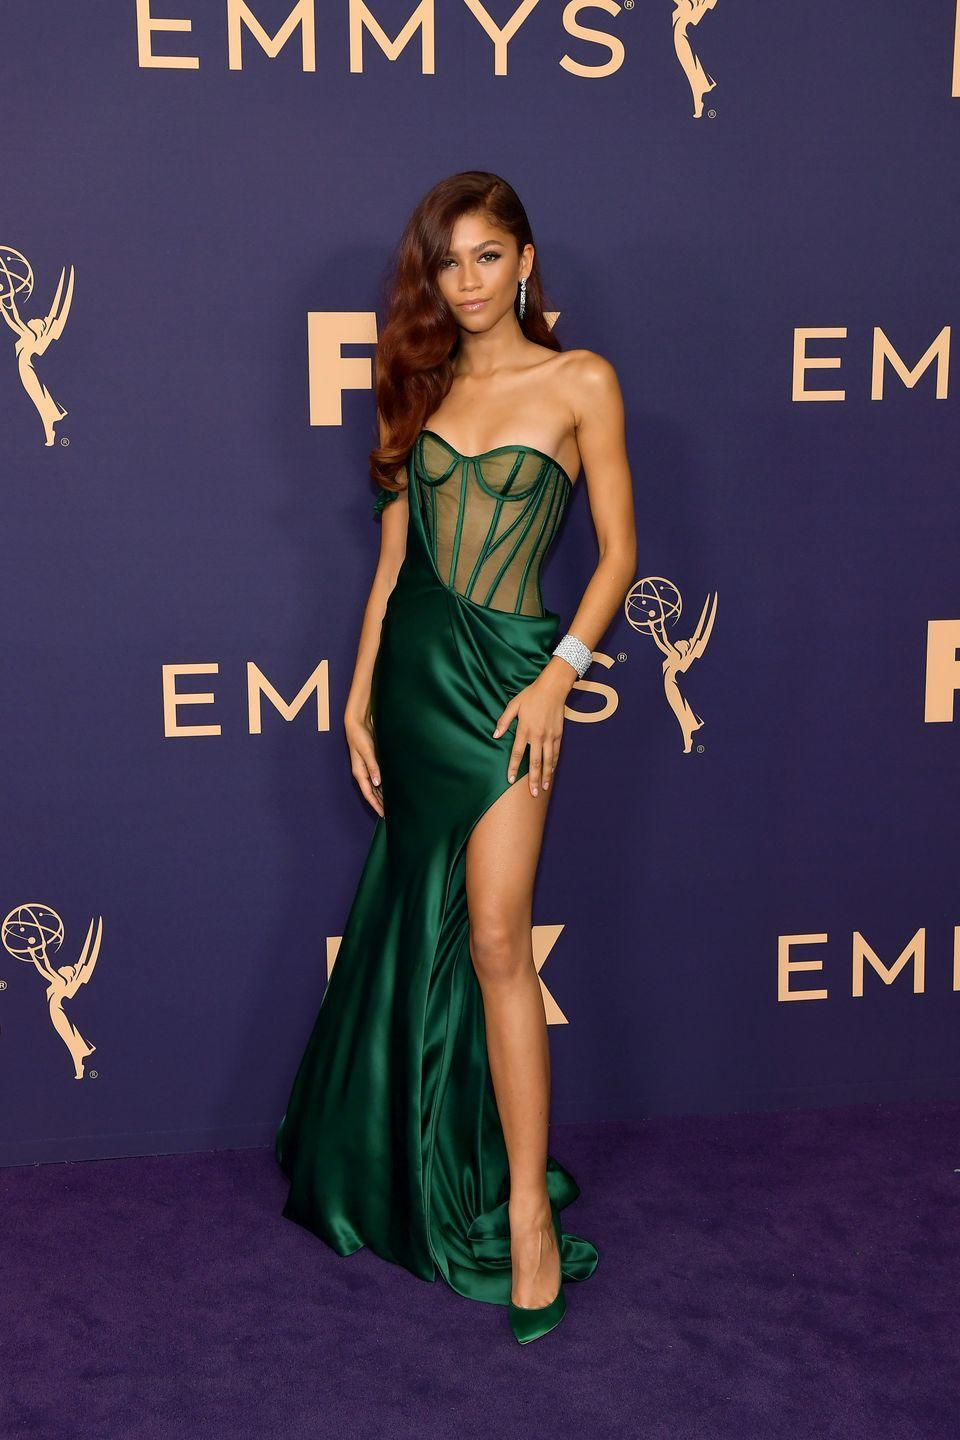 <p>She showed up at the 2019 Emmys looking like the Queen of Emerald City. This jewel-toned Vera Wang dress gave us us jaw-dropping old Hollywood glamour.</p>